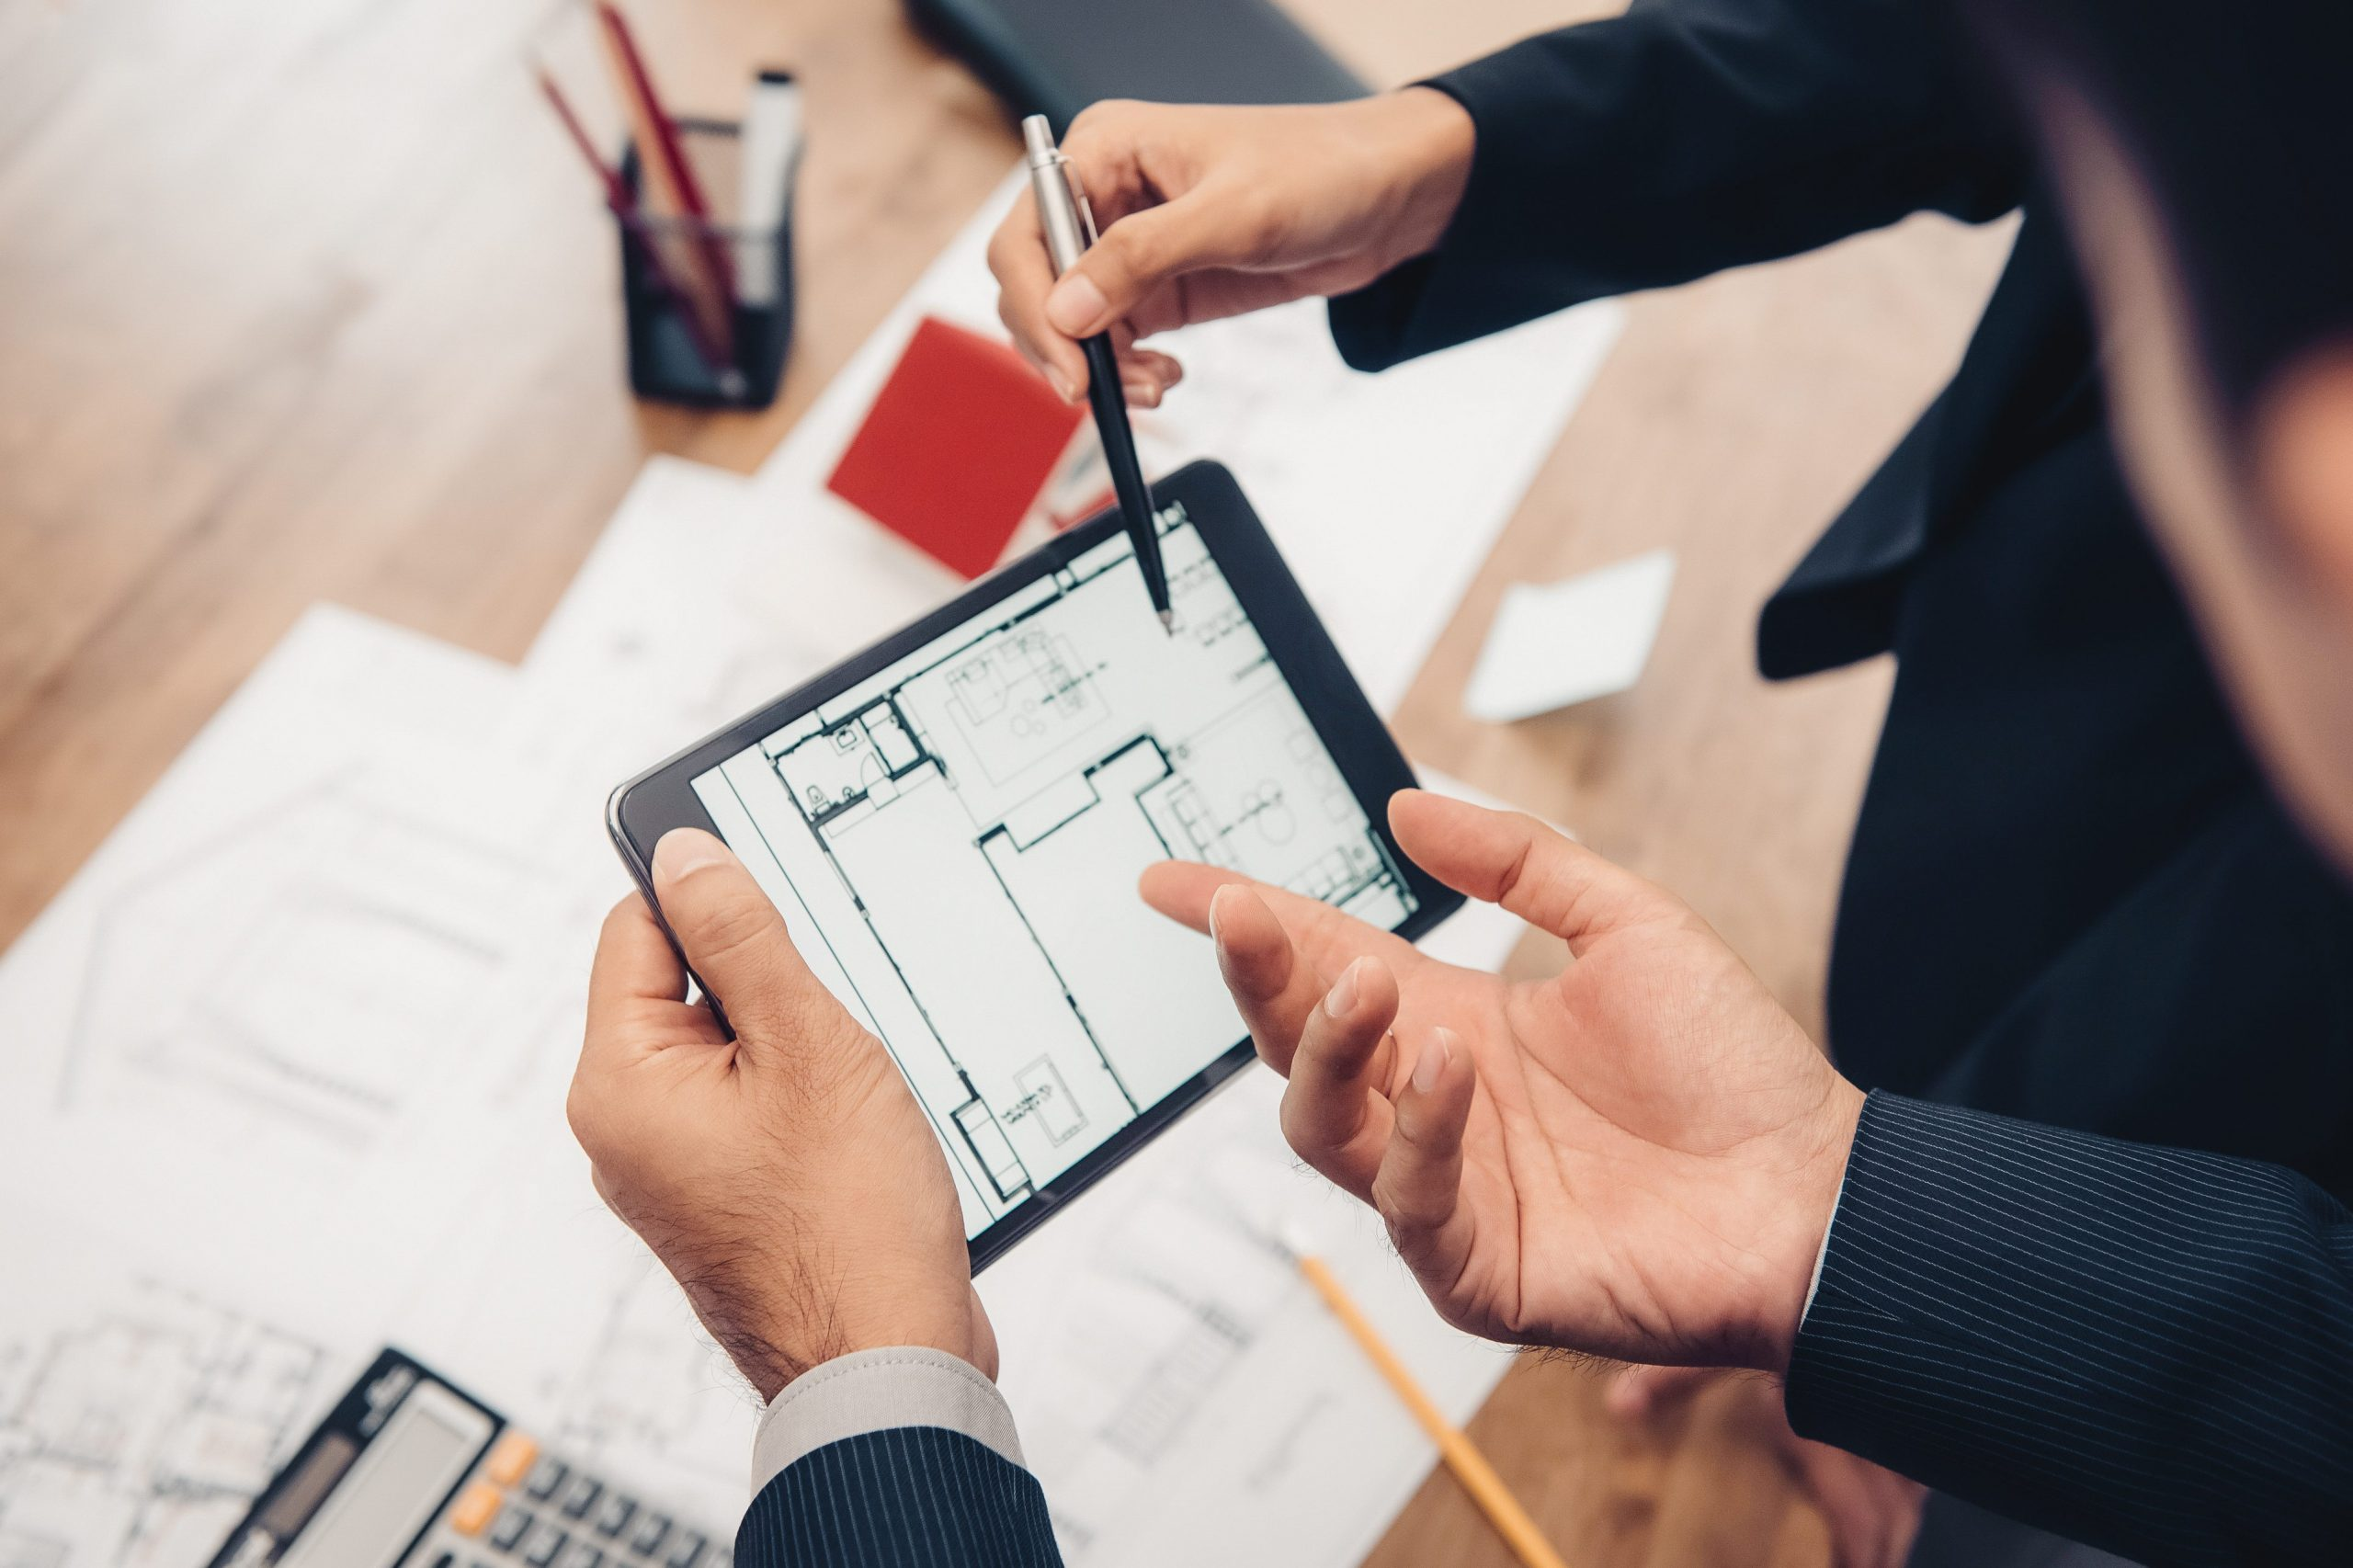 Real estate agent with client or architect team discussing a housing model and its blueprints digitally using a tablet computer